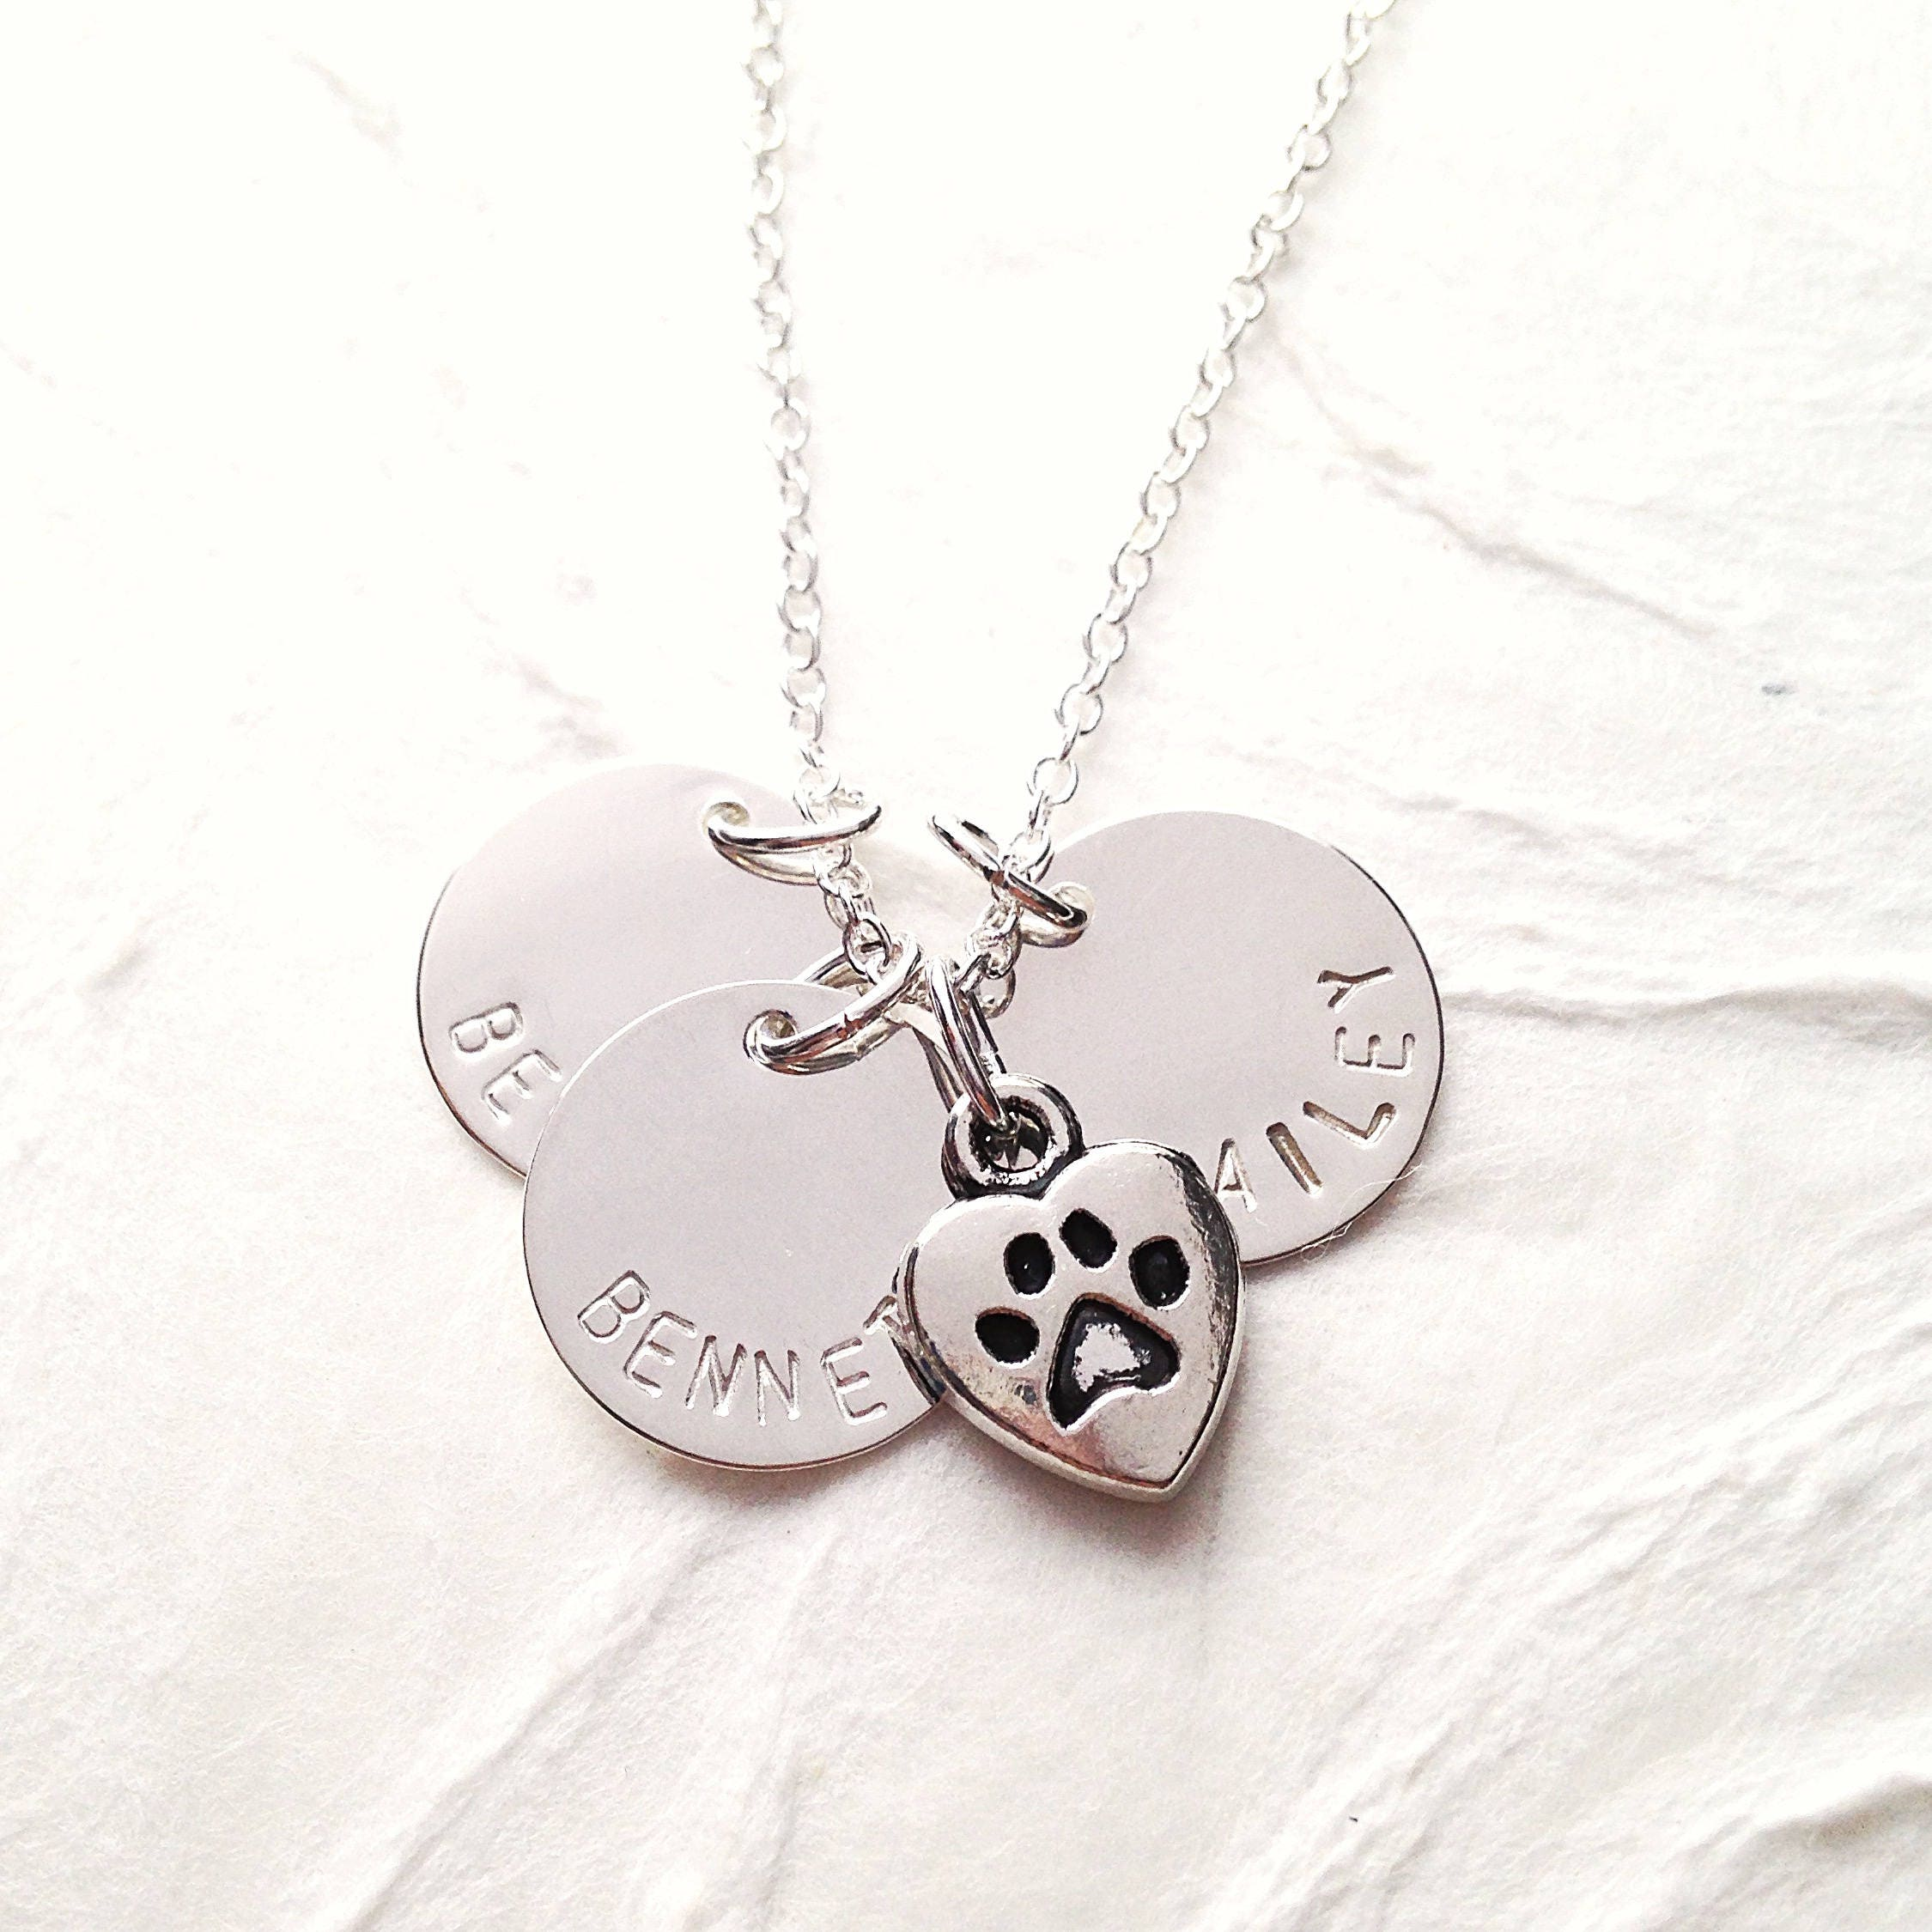 products sloth necklace furkeeps lover handmade sterling jewellery silver